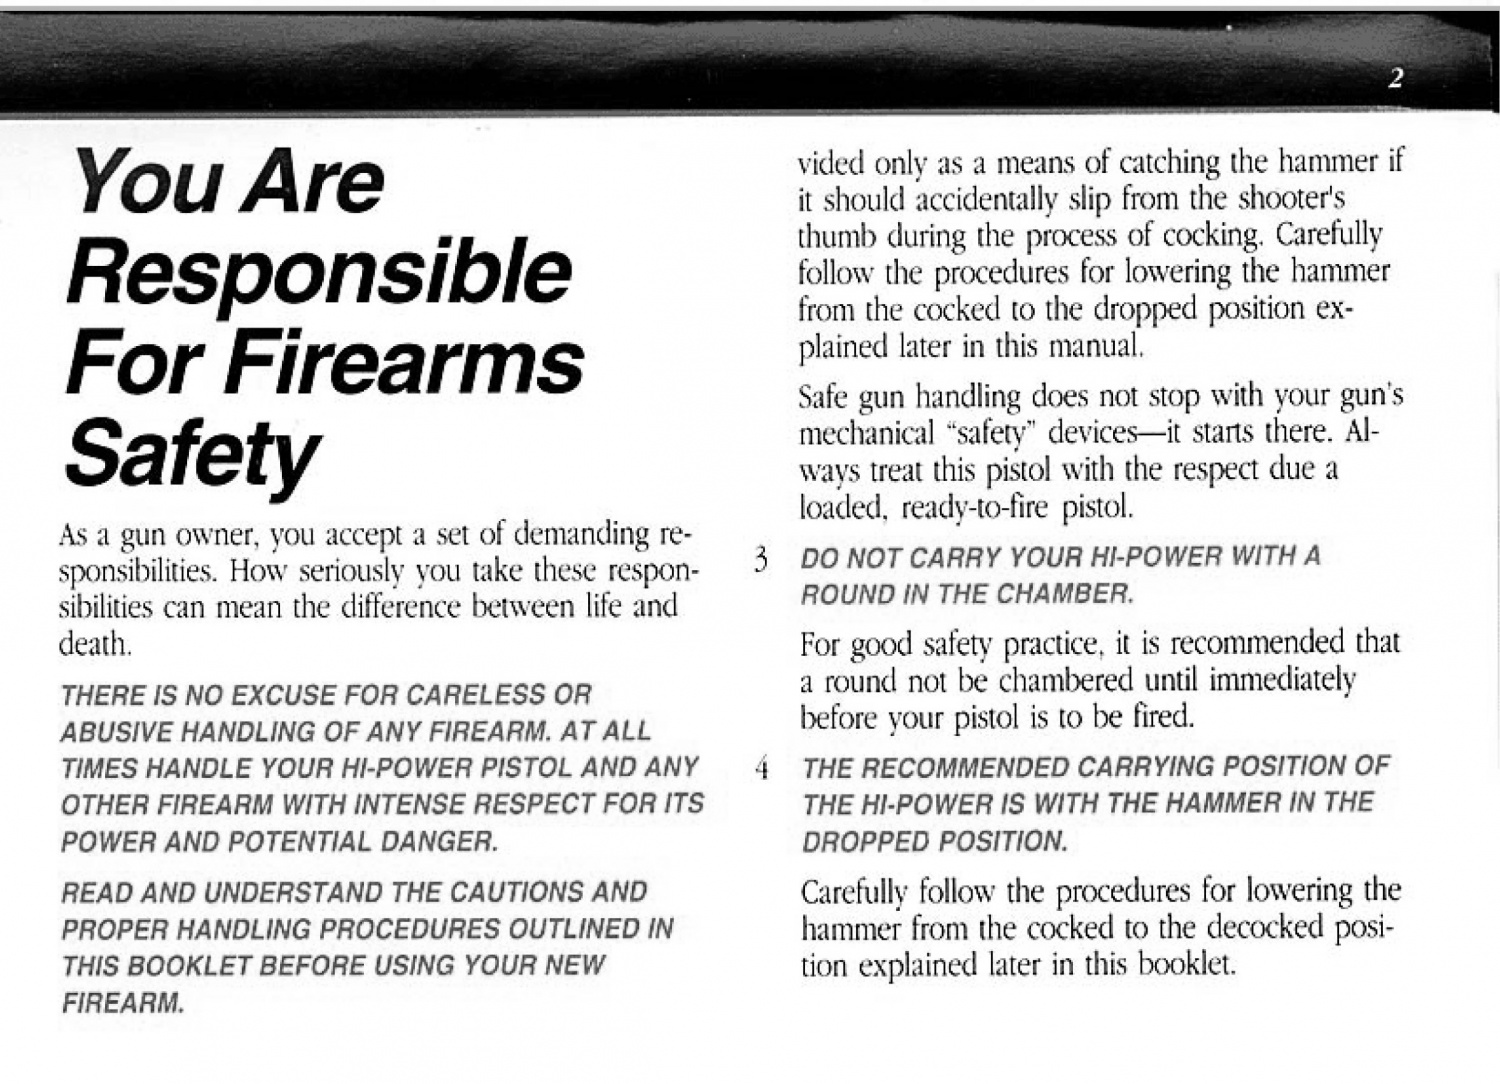 Concealed Carry Corner: Carrying Without a Round in the